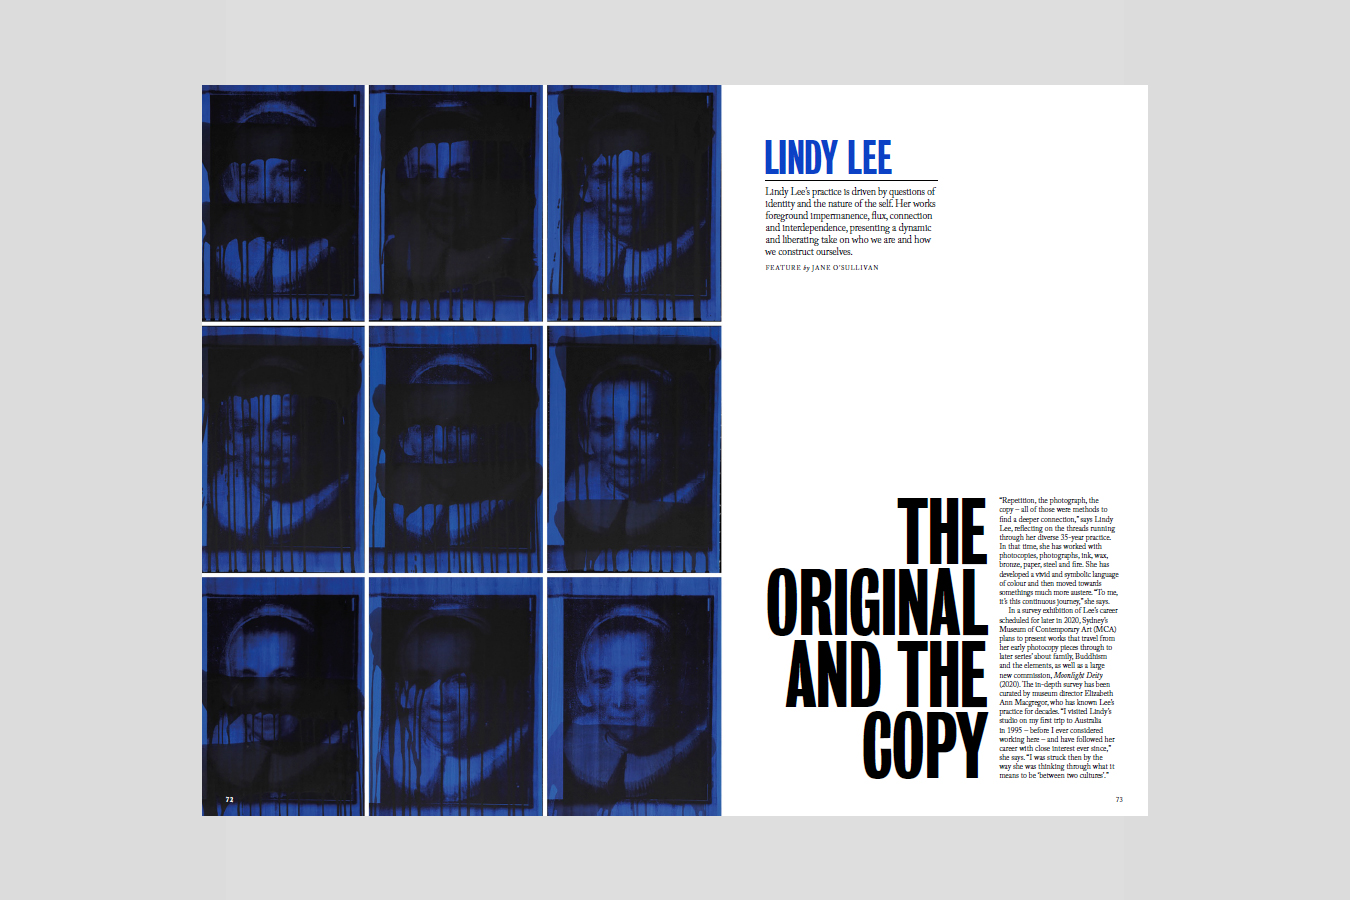 Lindy Lee in Vault magazine